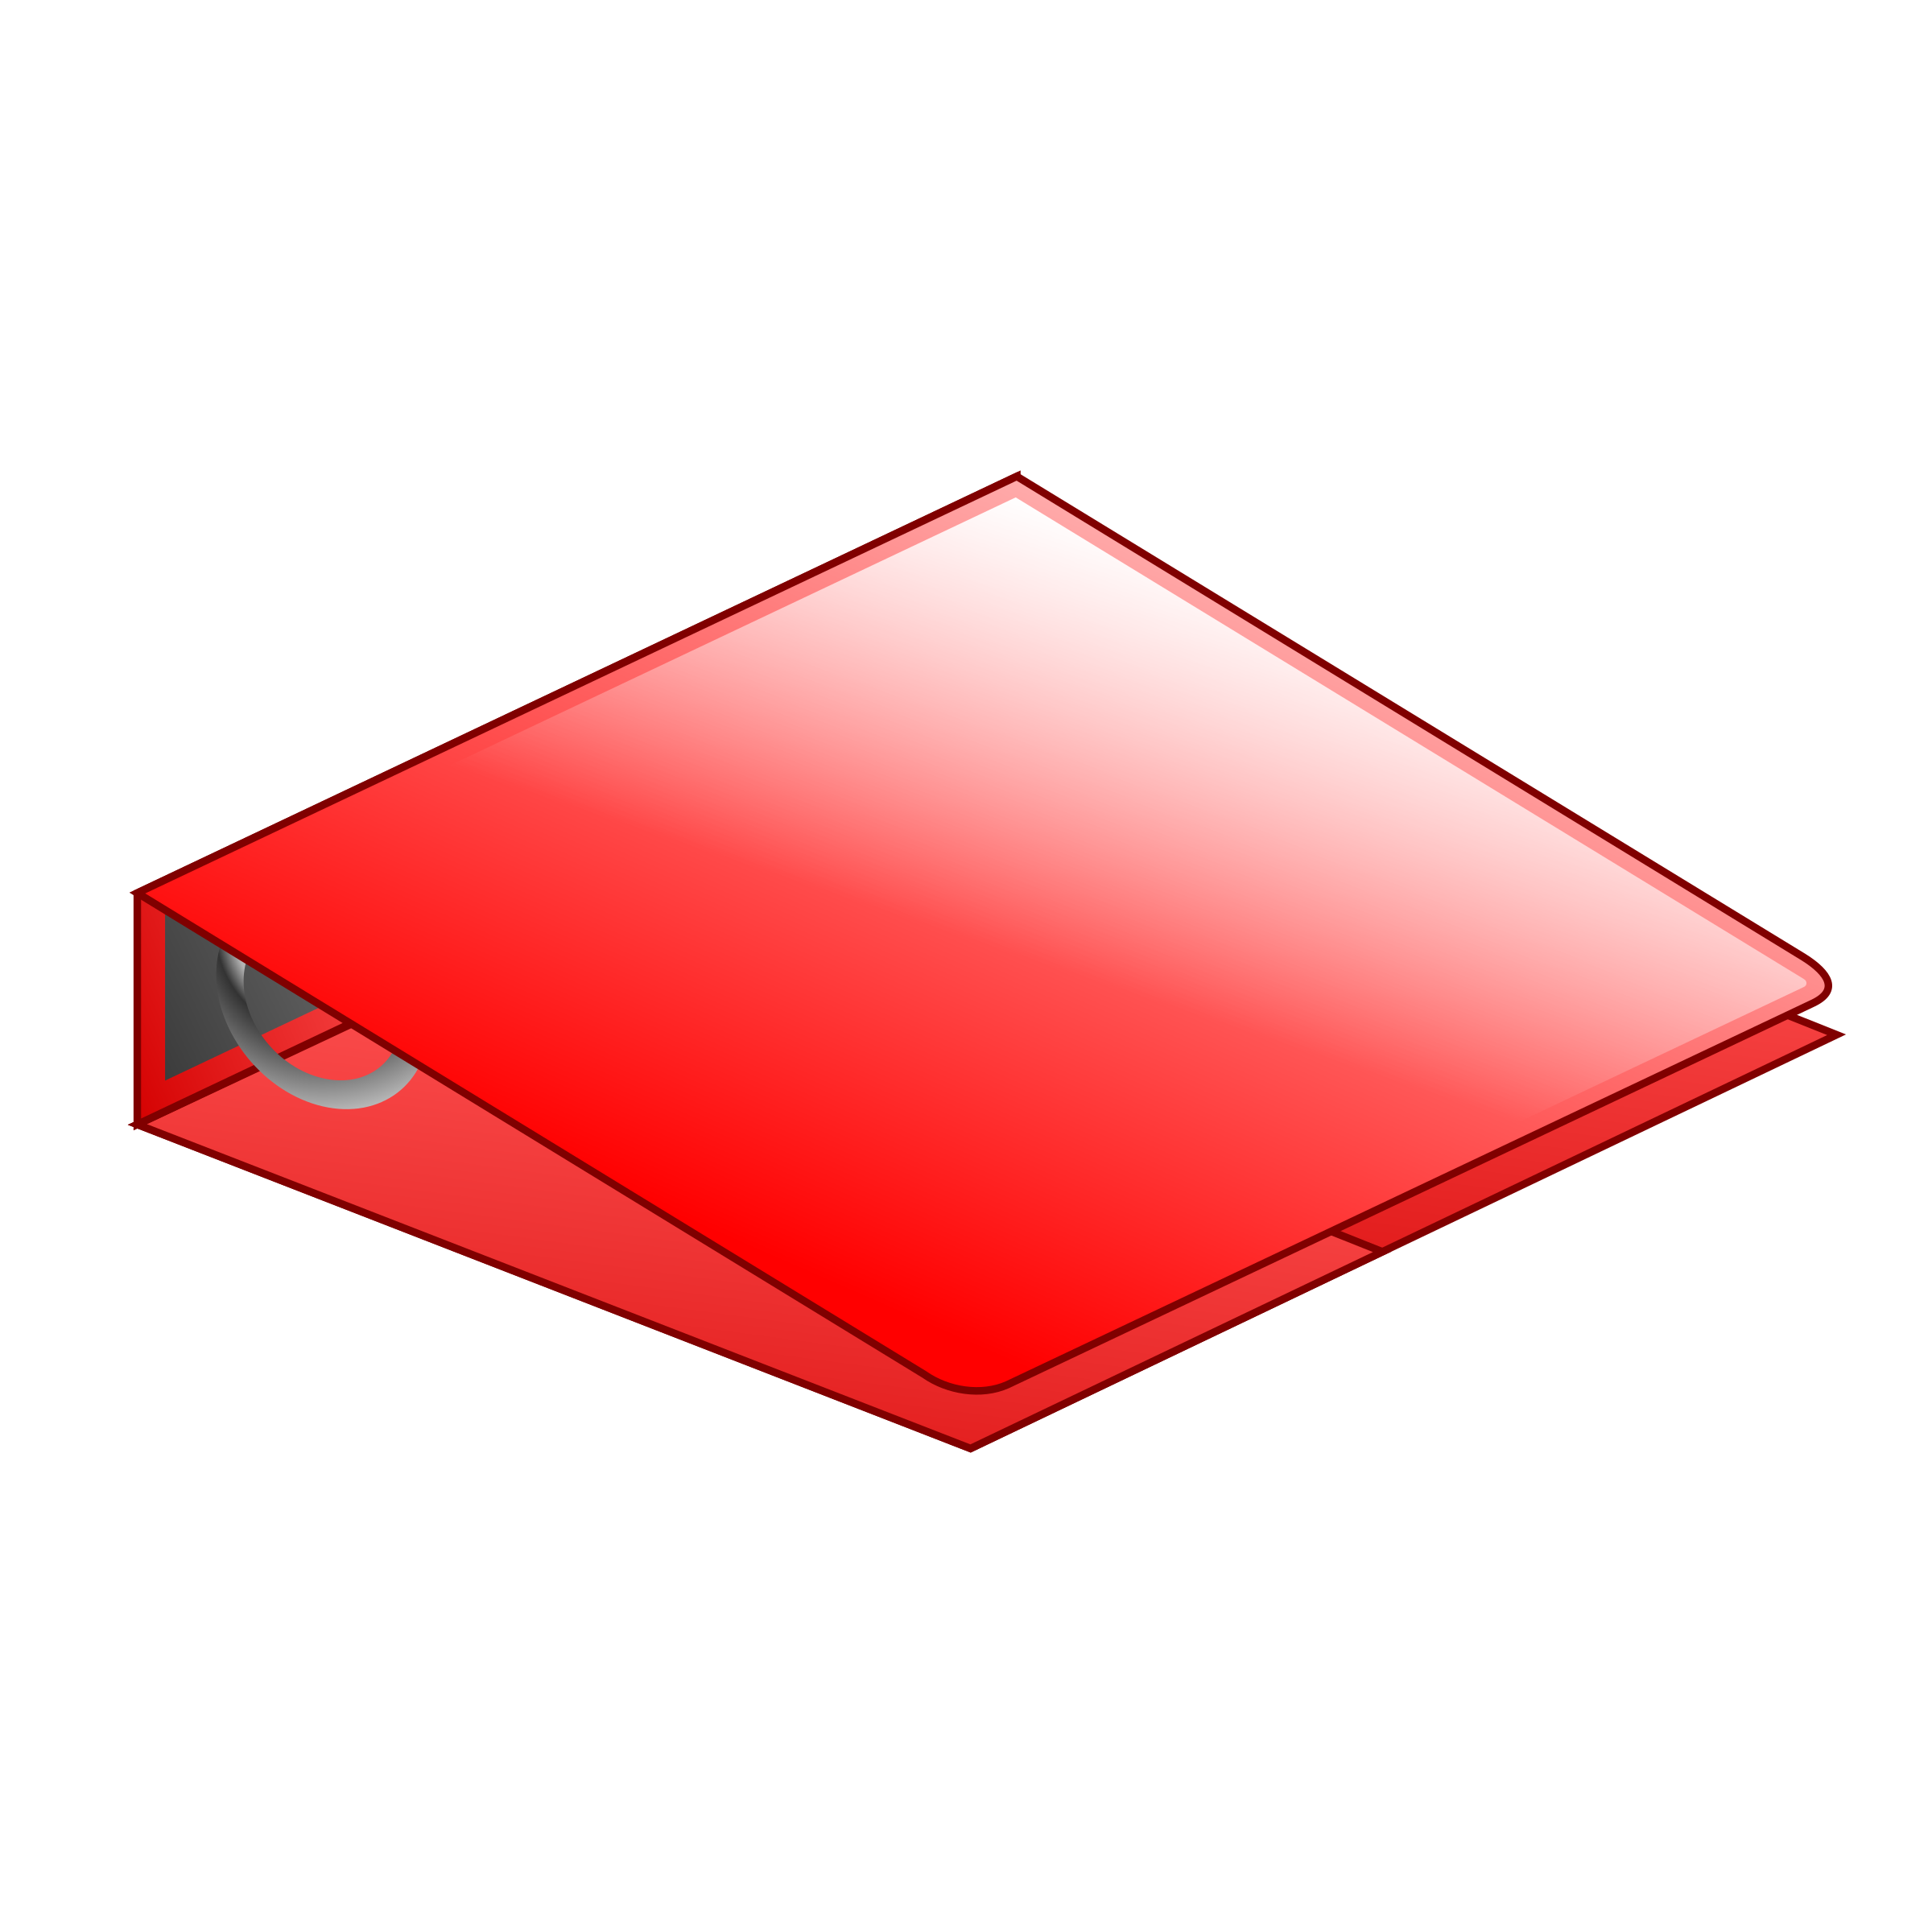 Red ring binder icons. Folder clipart organized file